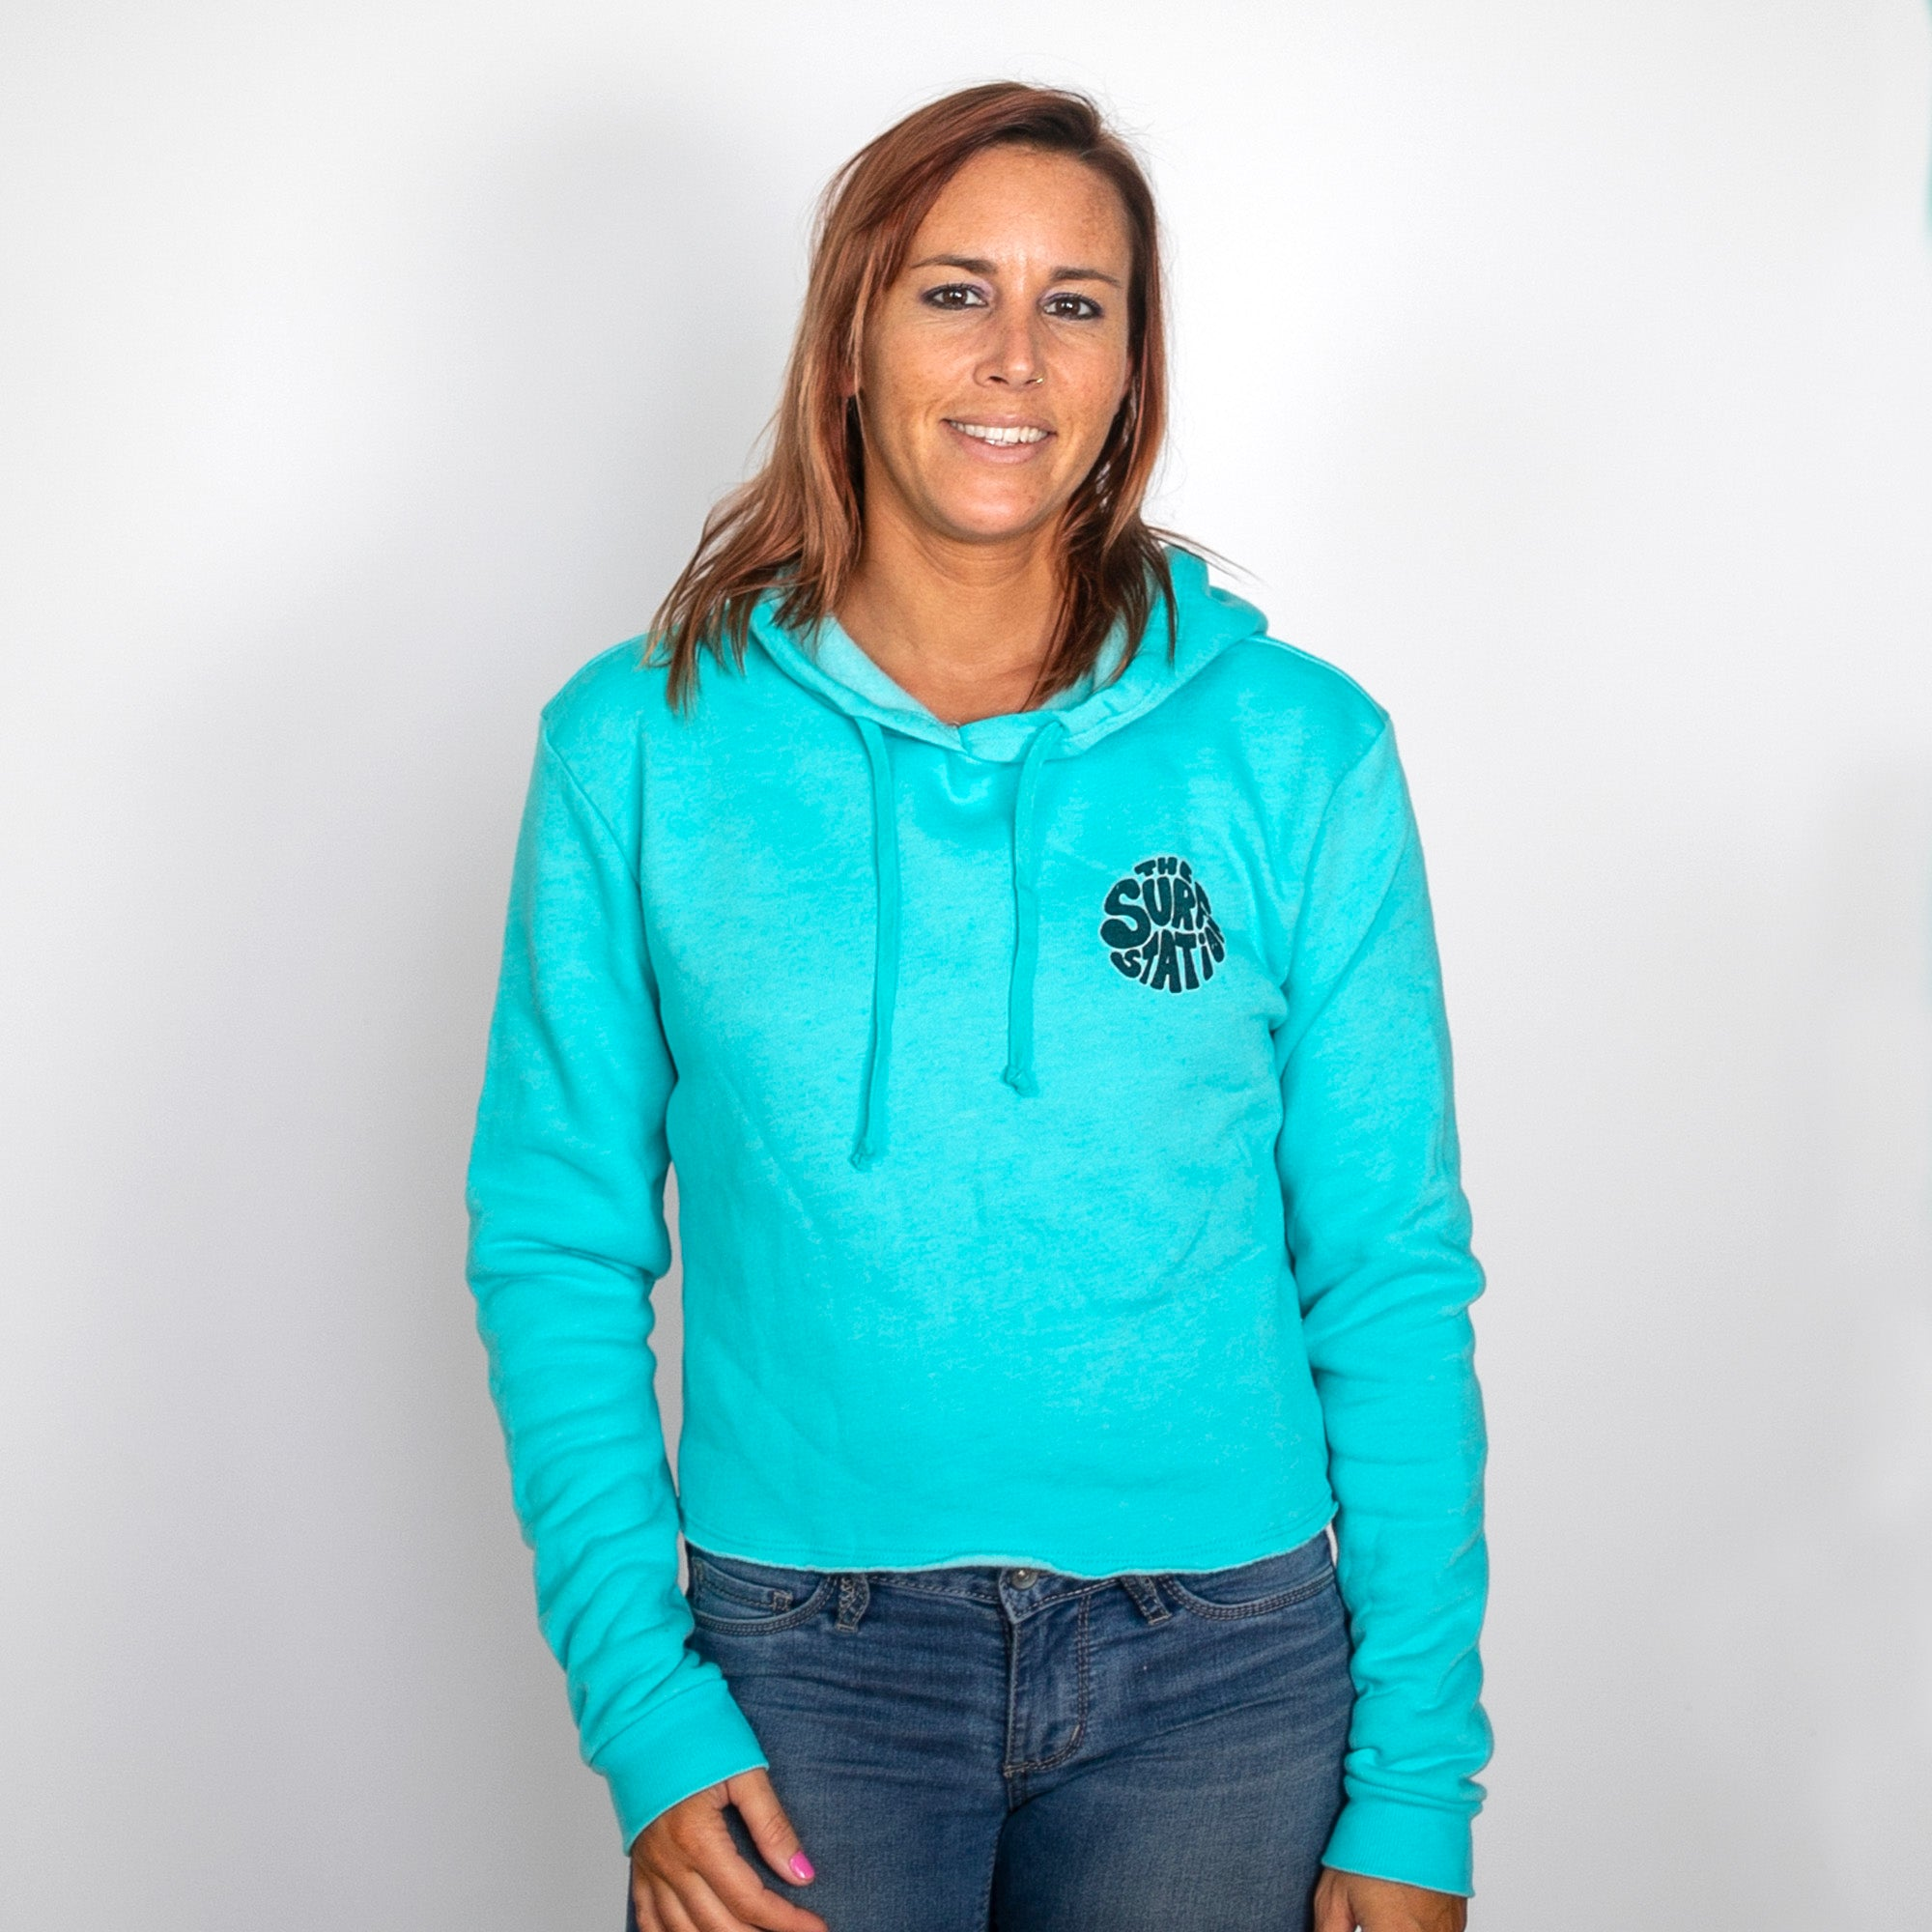 Surf Station Cassie Crop Women's Fleece Hoodie